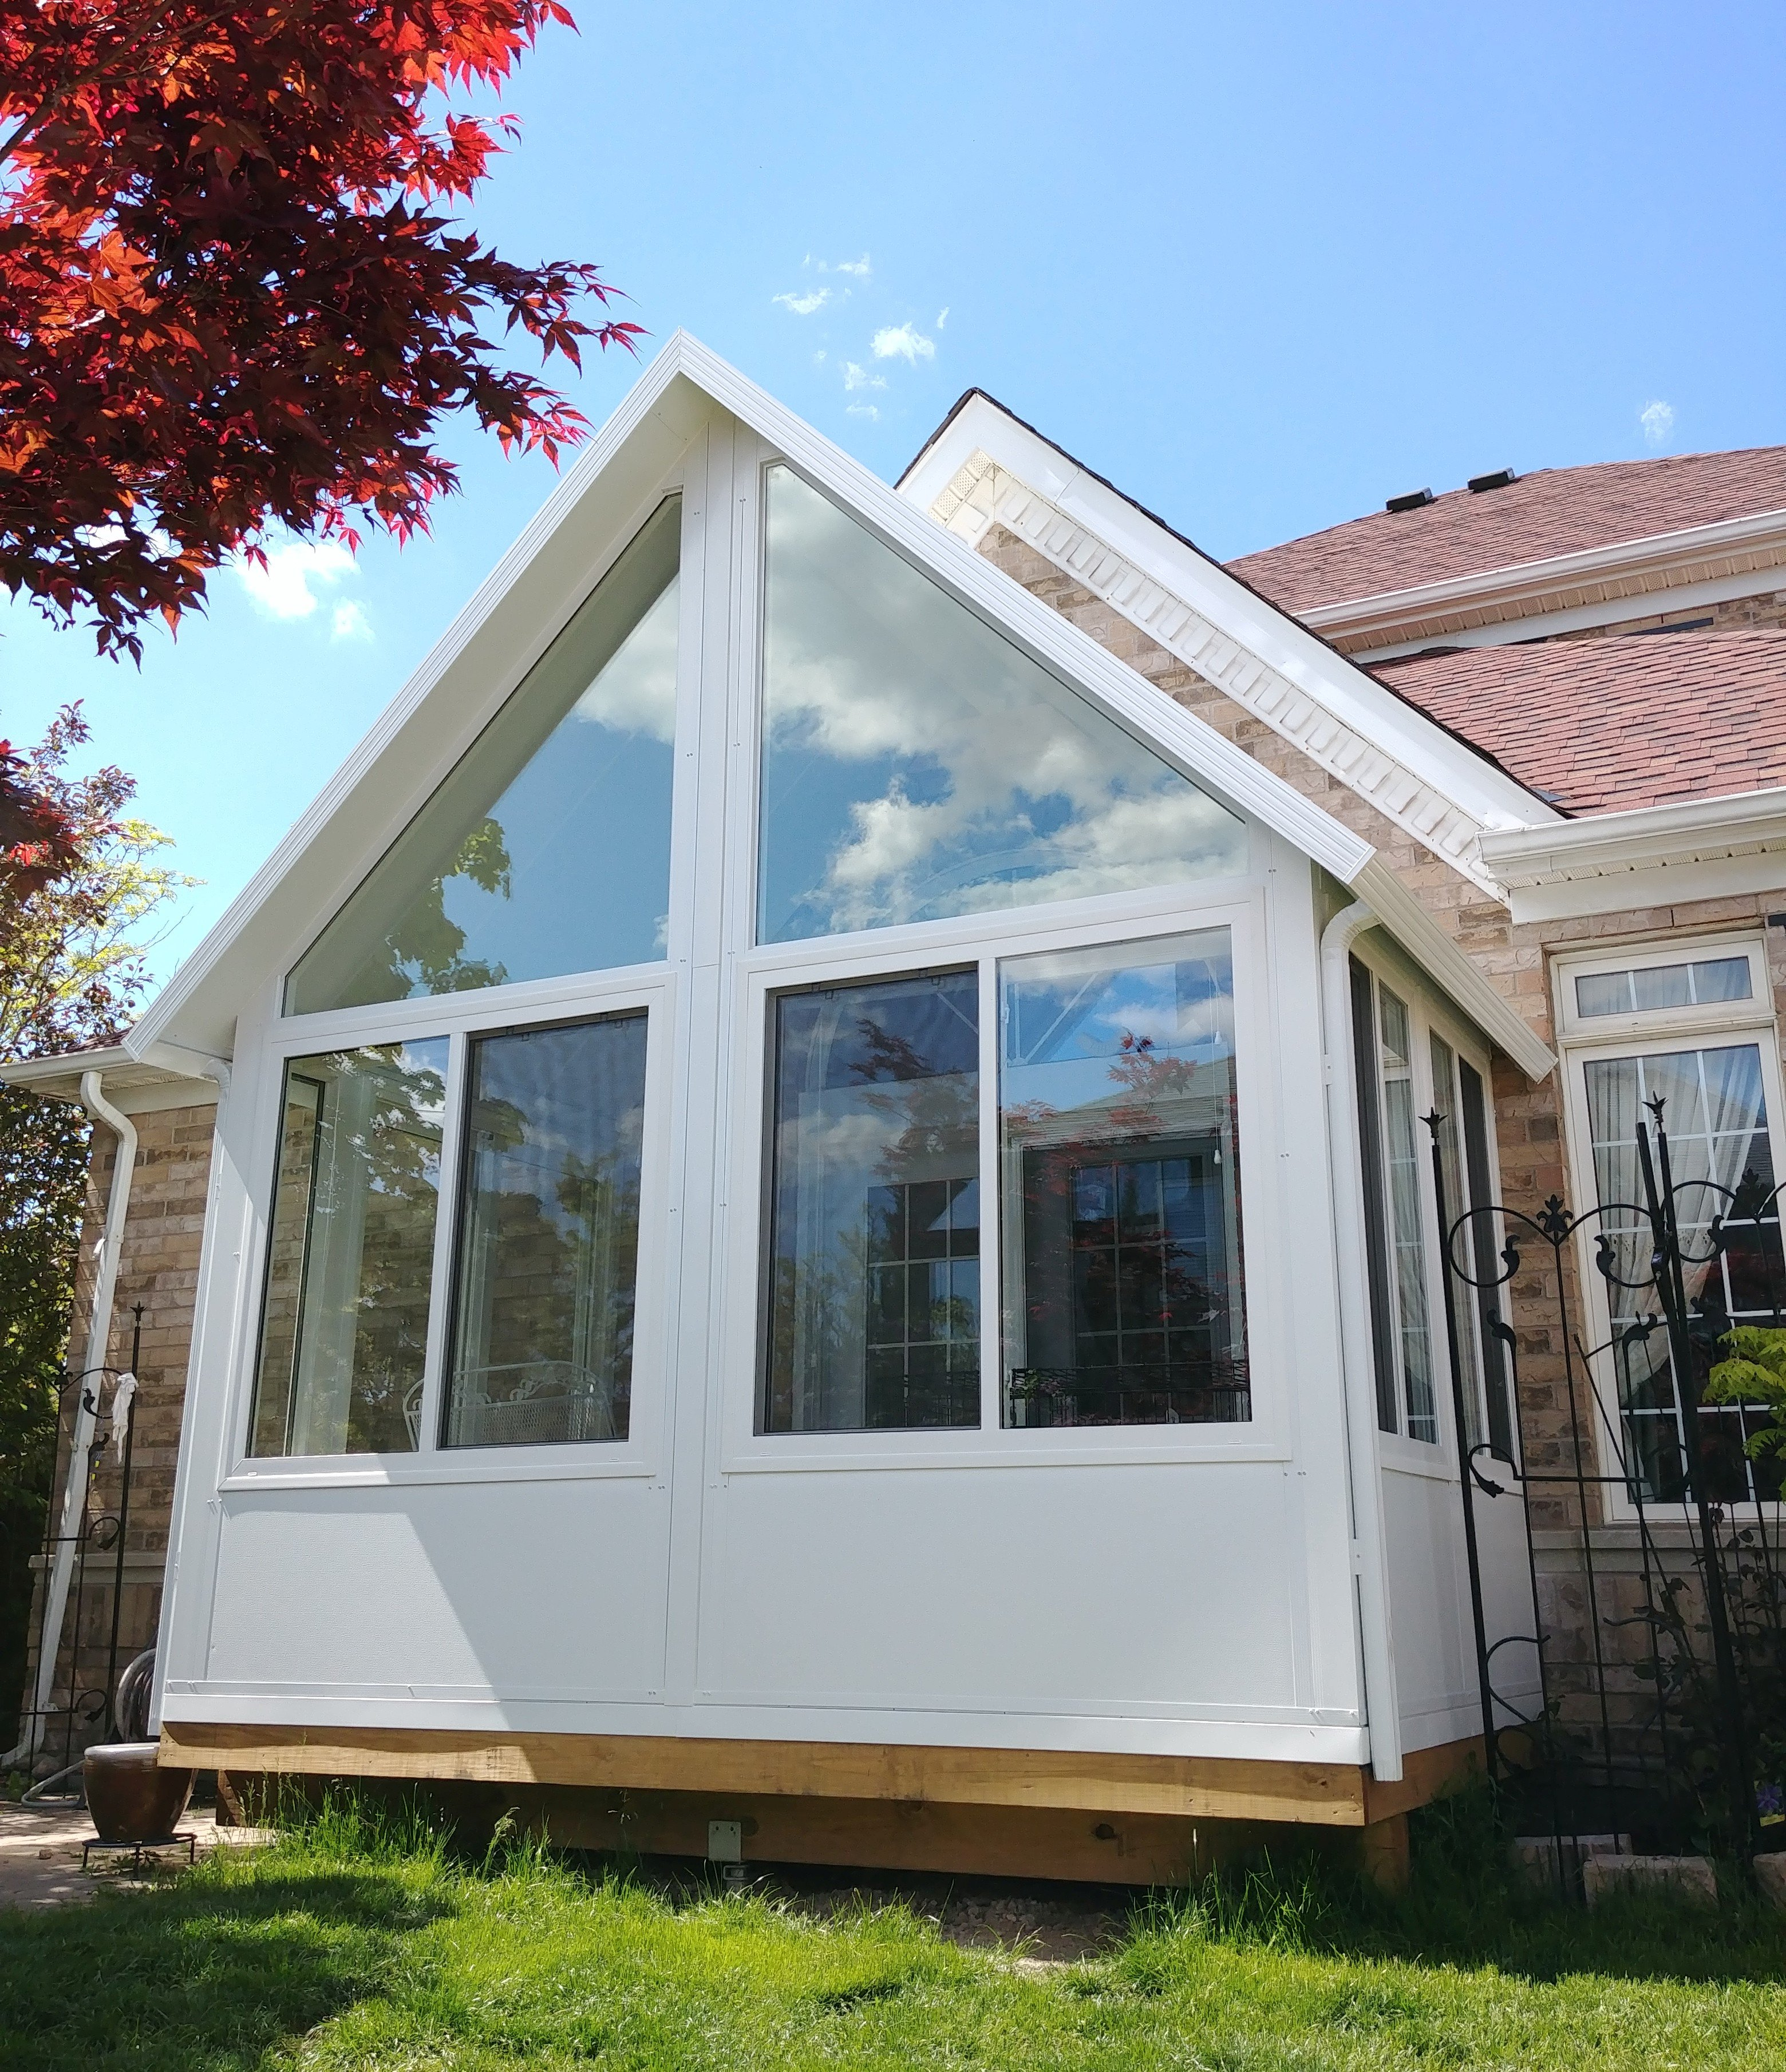 Insulated Sunroom